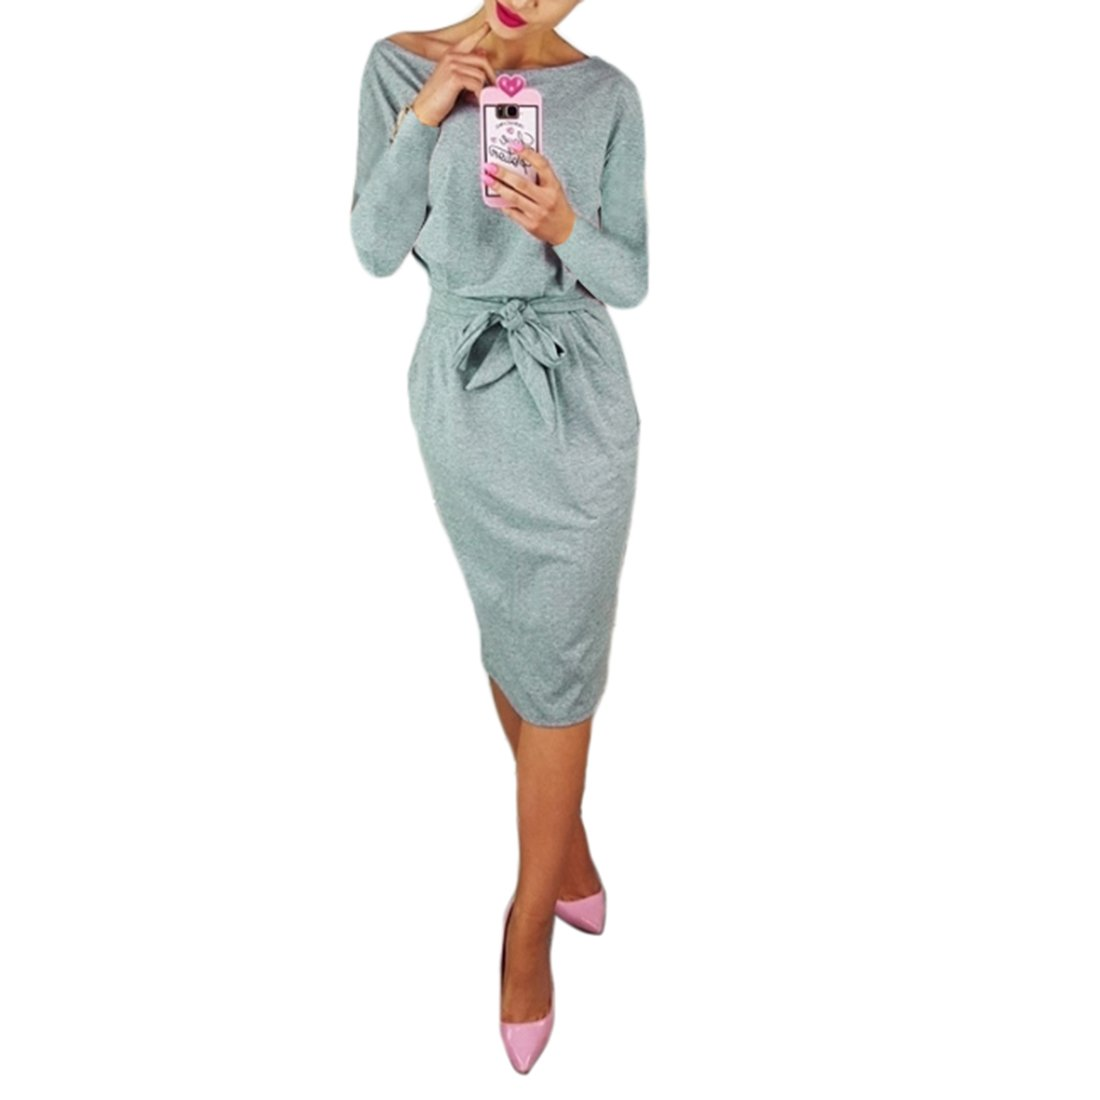 Shinekoo Autumn Women Elegant Long Sleeve Office Casual Pencil Dress with Pockets